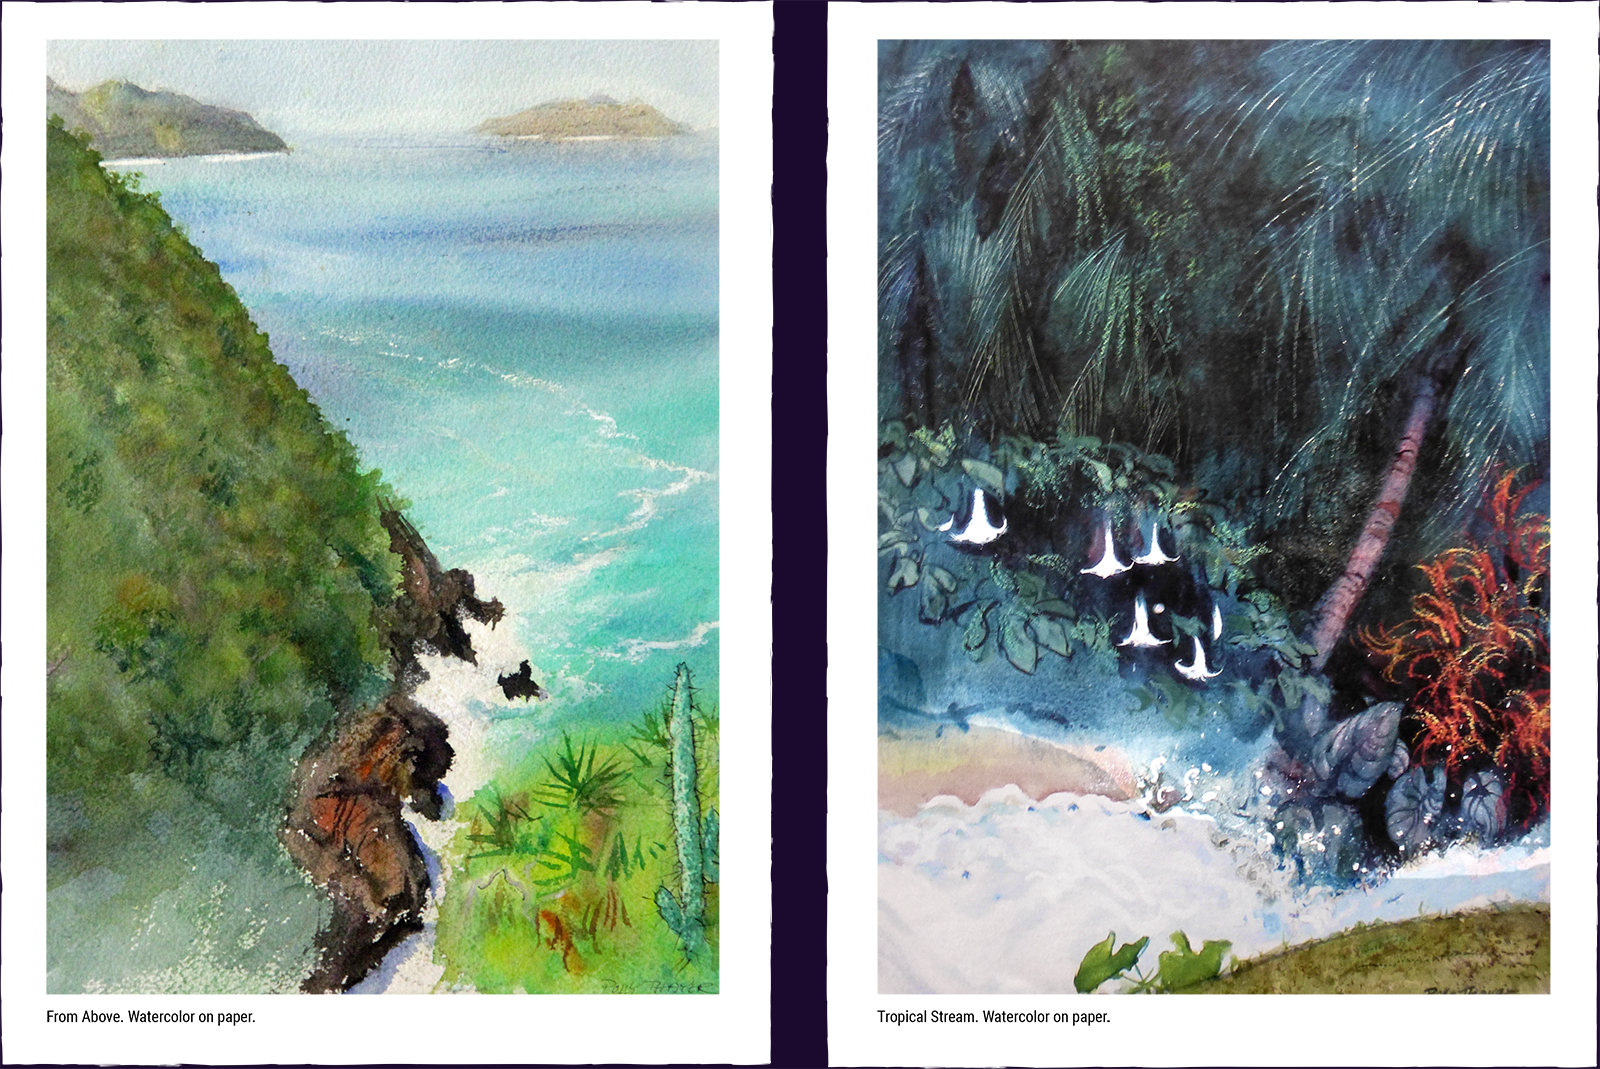 Two landscape paintings. (1) From Above. Watercolor on paper. (2) Tropical Stream. Watercolor on paper.